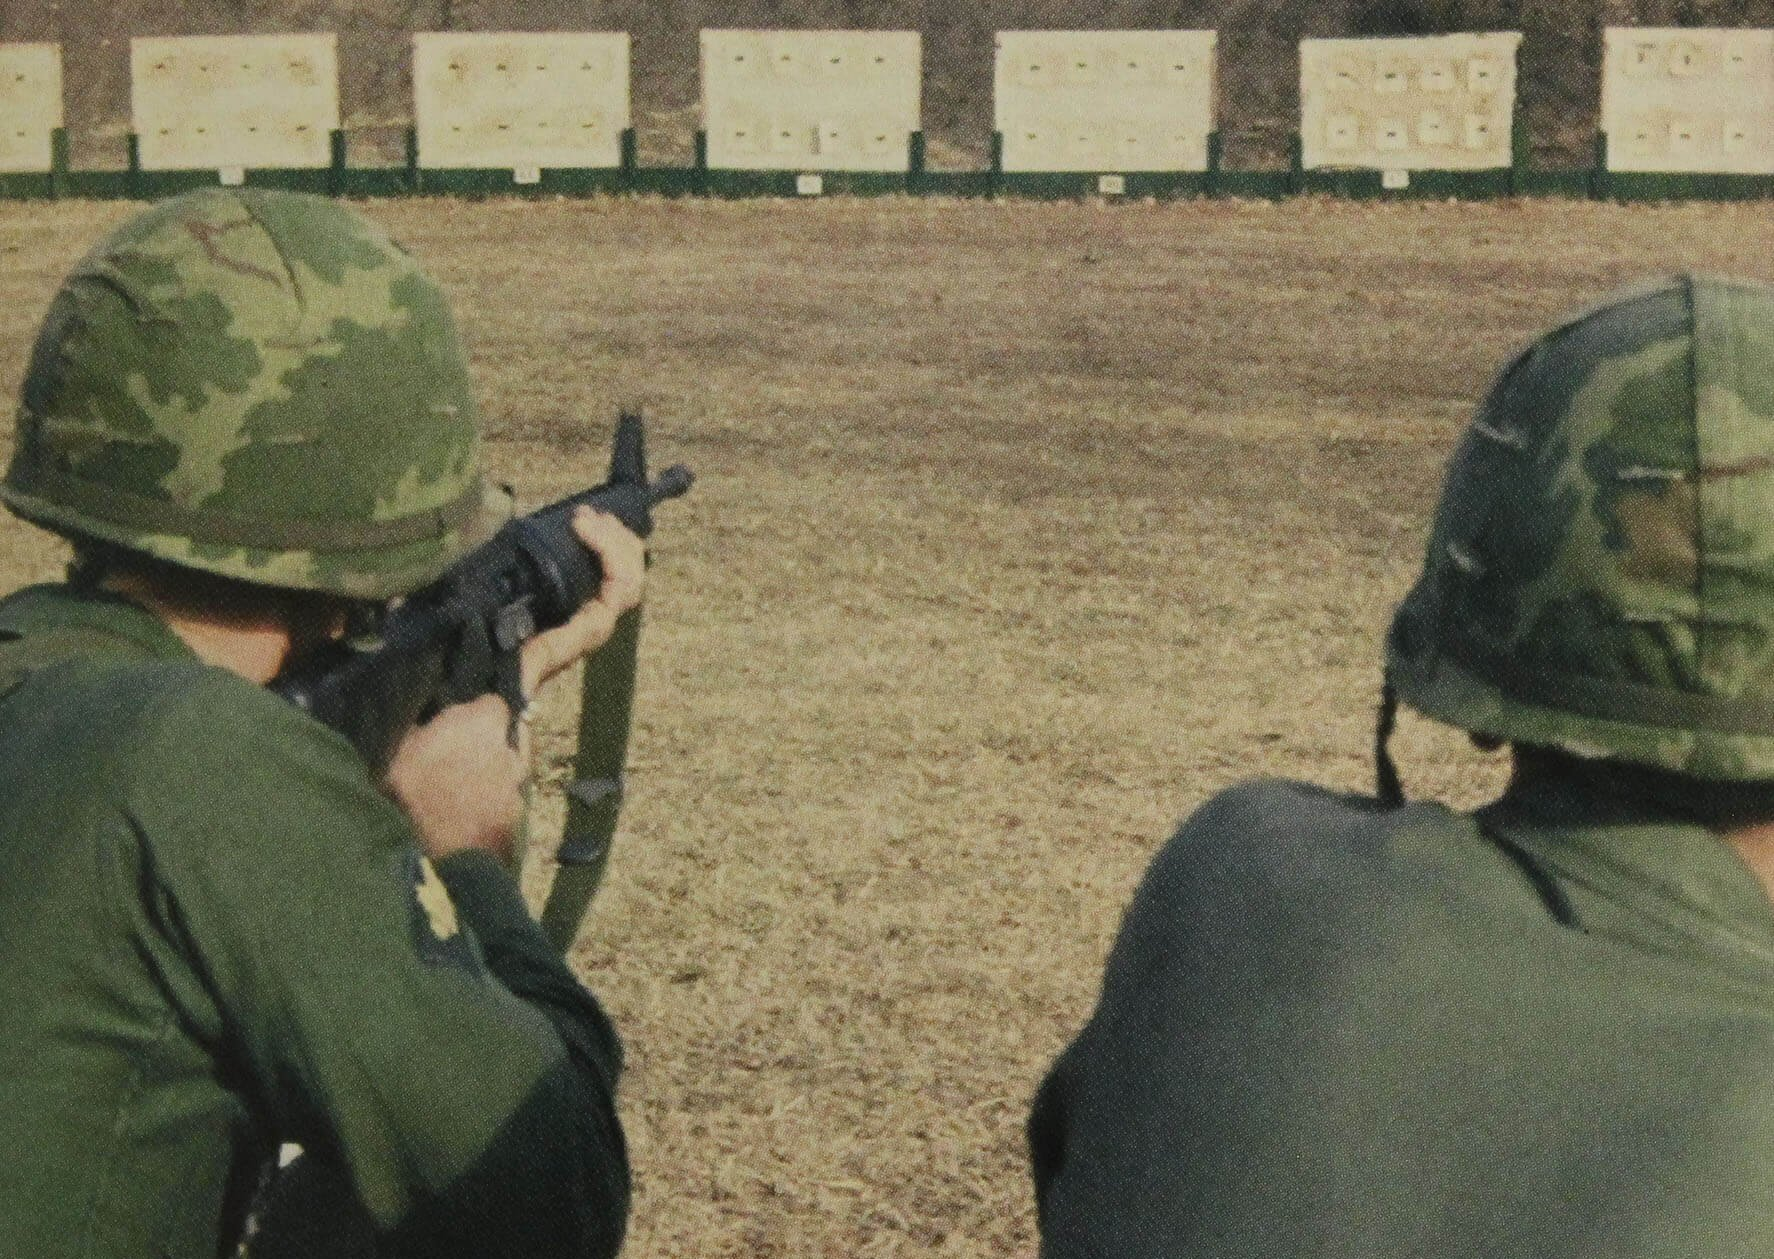 Two soldiers from behind, taking aim at far away targets.